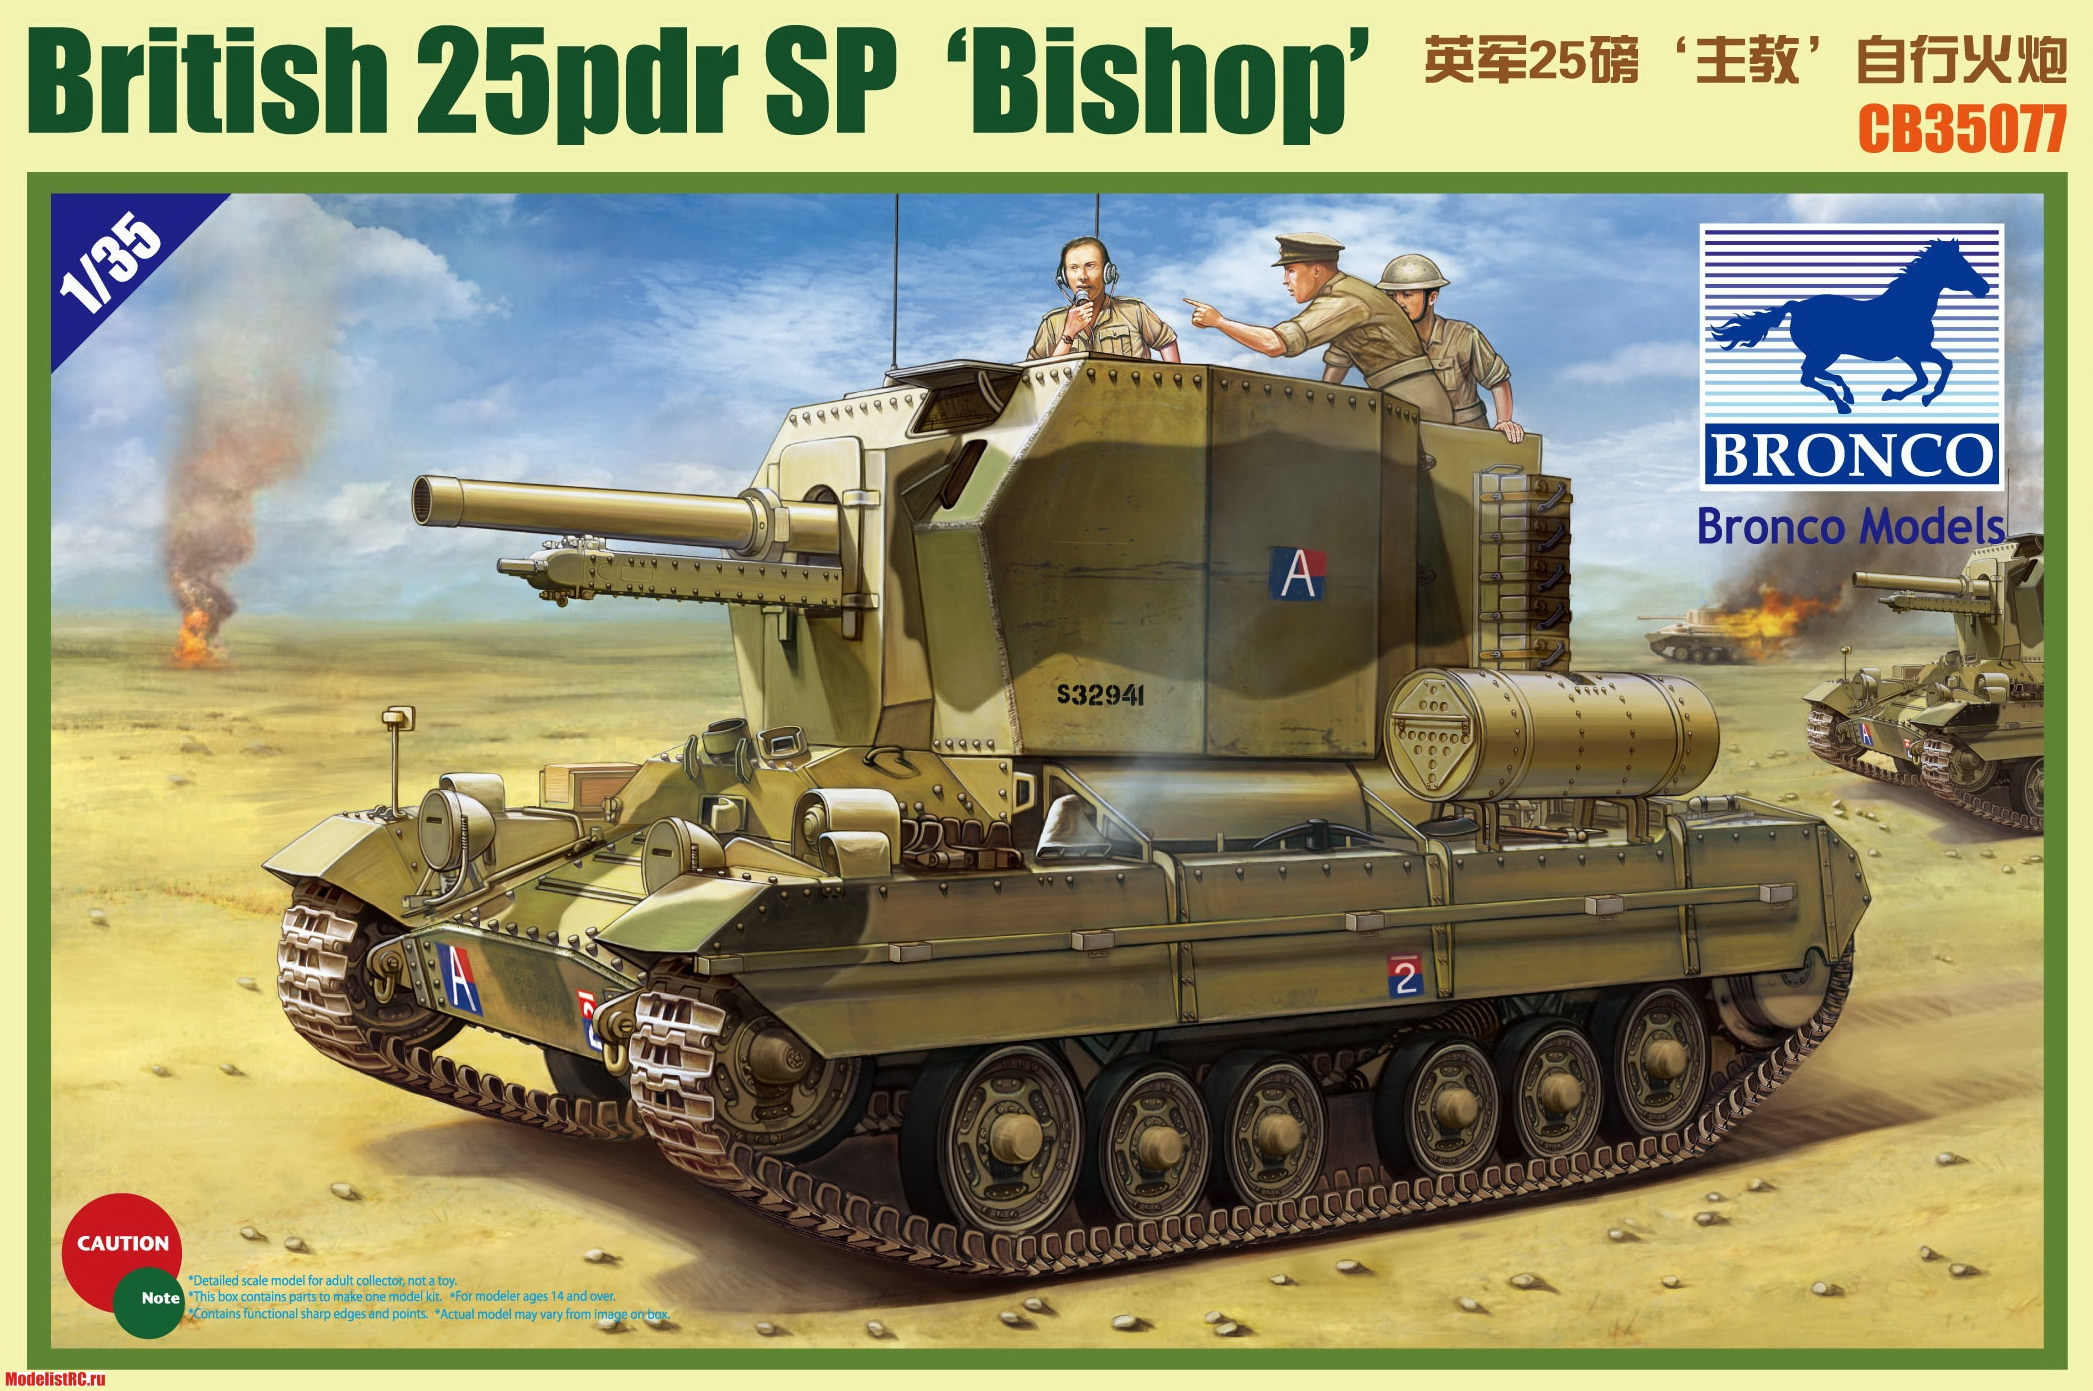 1/35 Valentine  SPG Bishop CB35077 Bronco